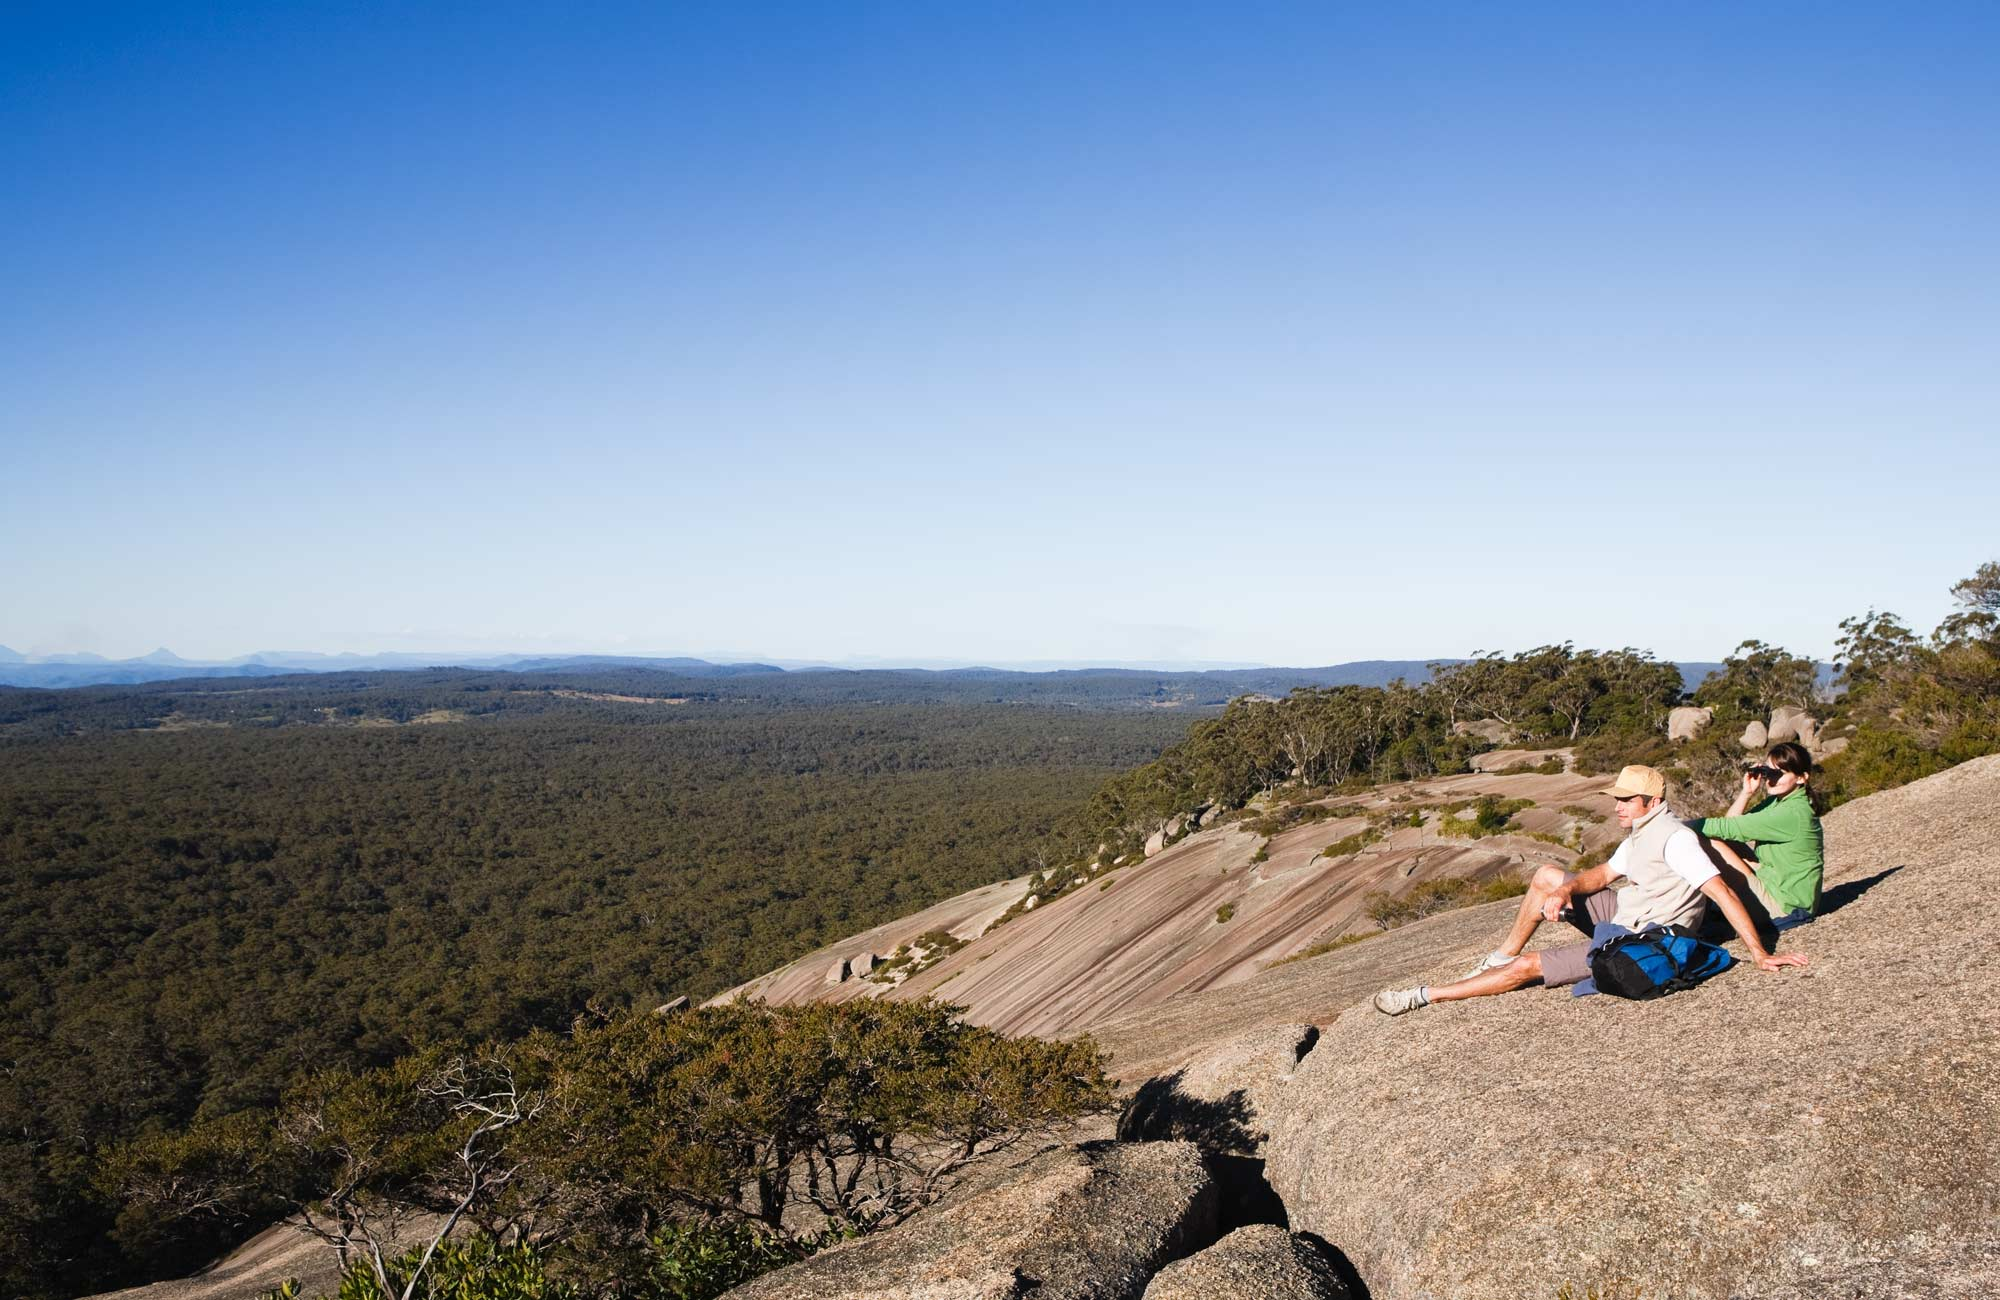 At the Summit of Bald Rock